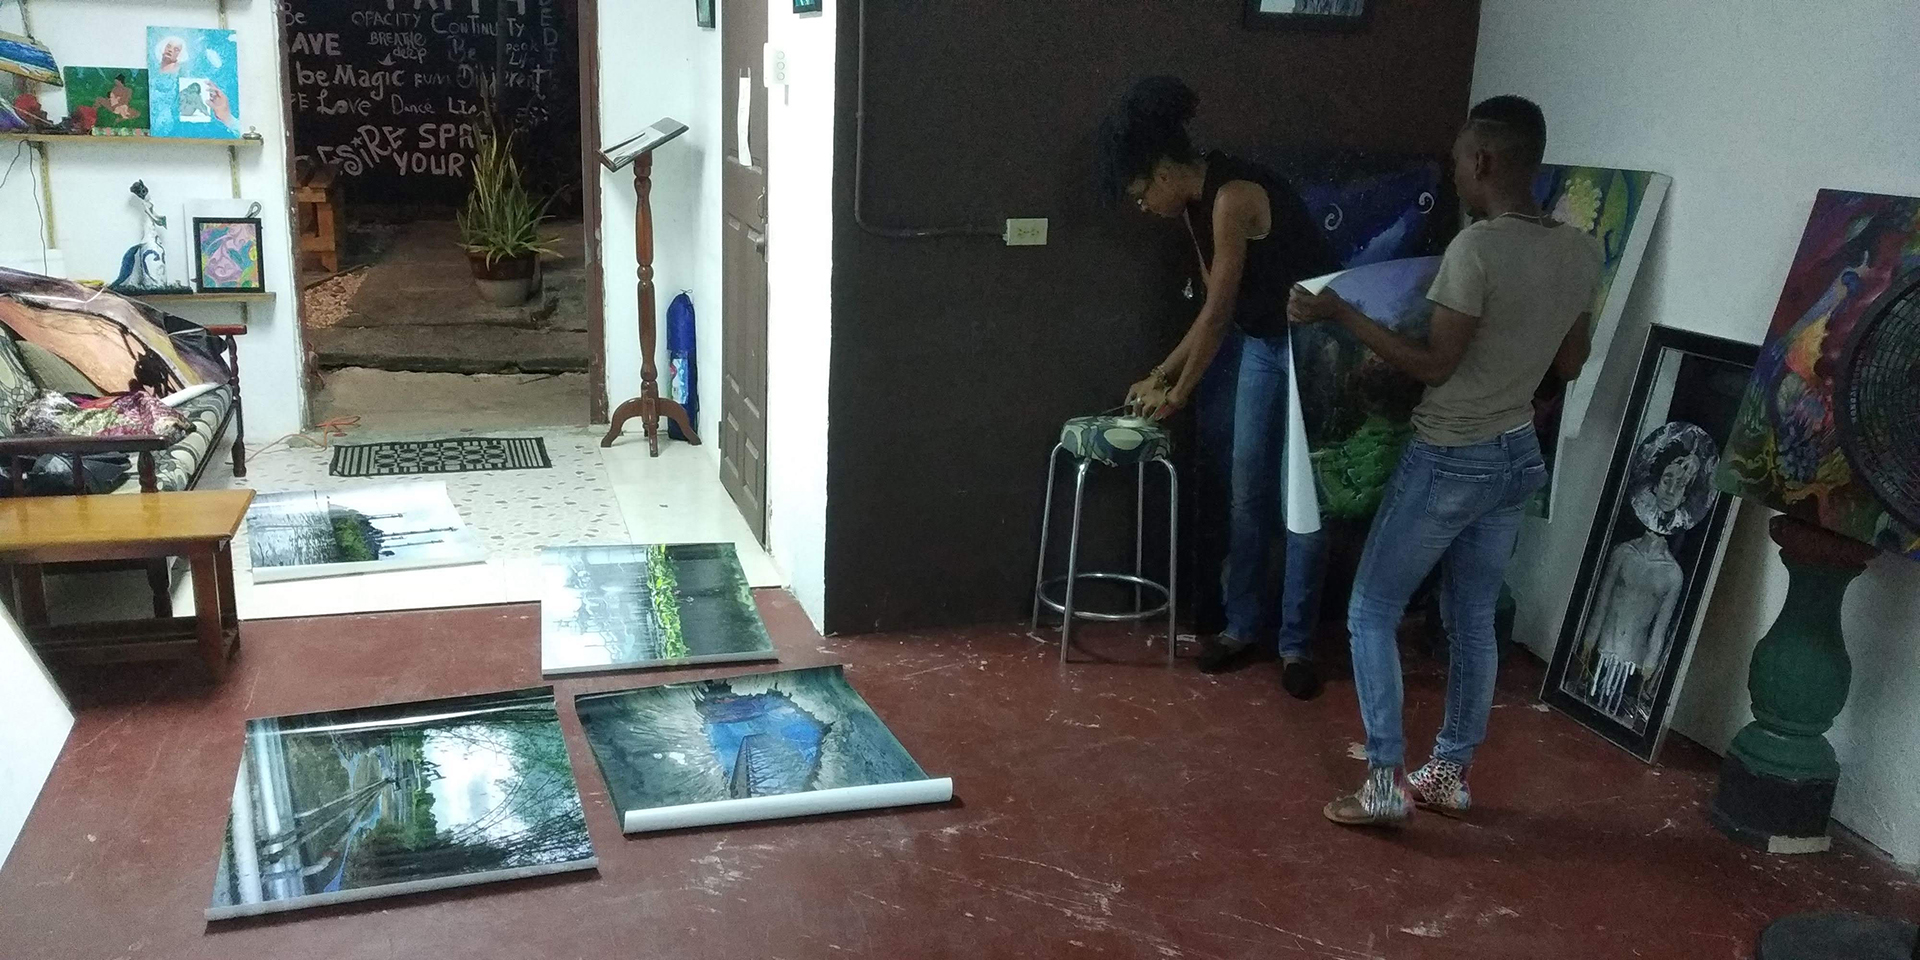 Image of Maica Gugolati's work in Art Center East Yard 30th August 2019. Arima, Trinidad and Tobago (WI). Digital photoprint on commercial waterproof material for advertisement; Printed in TT.